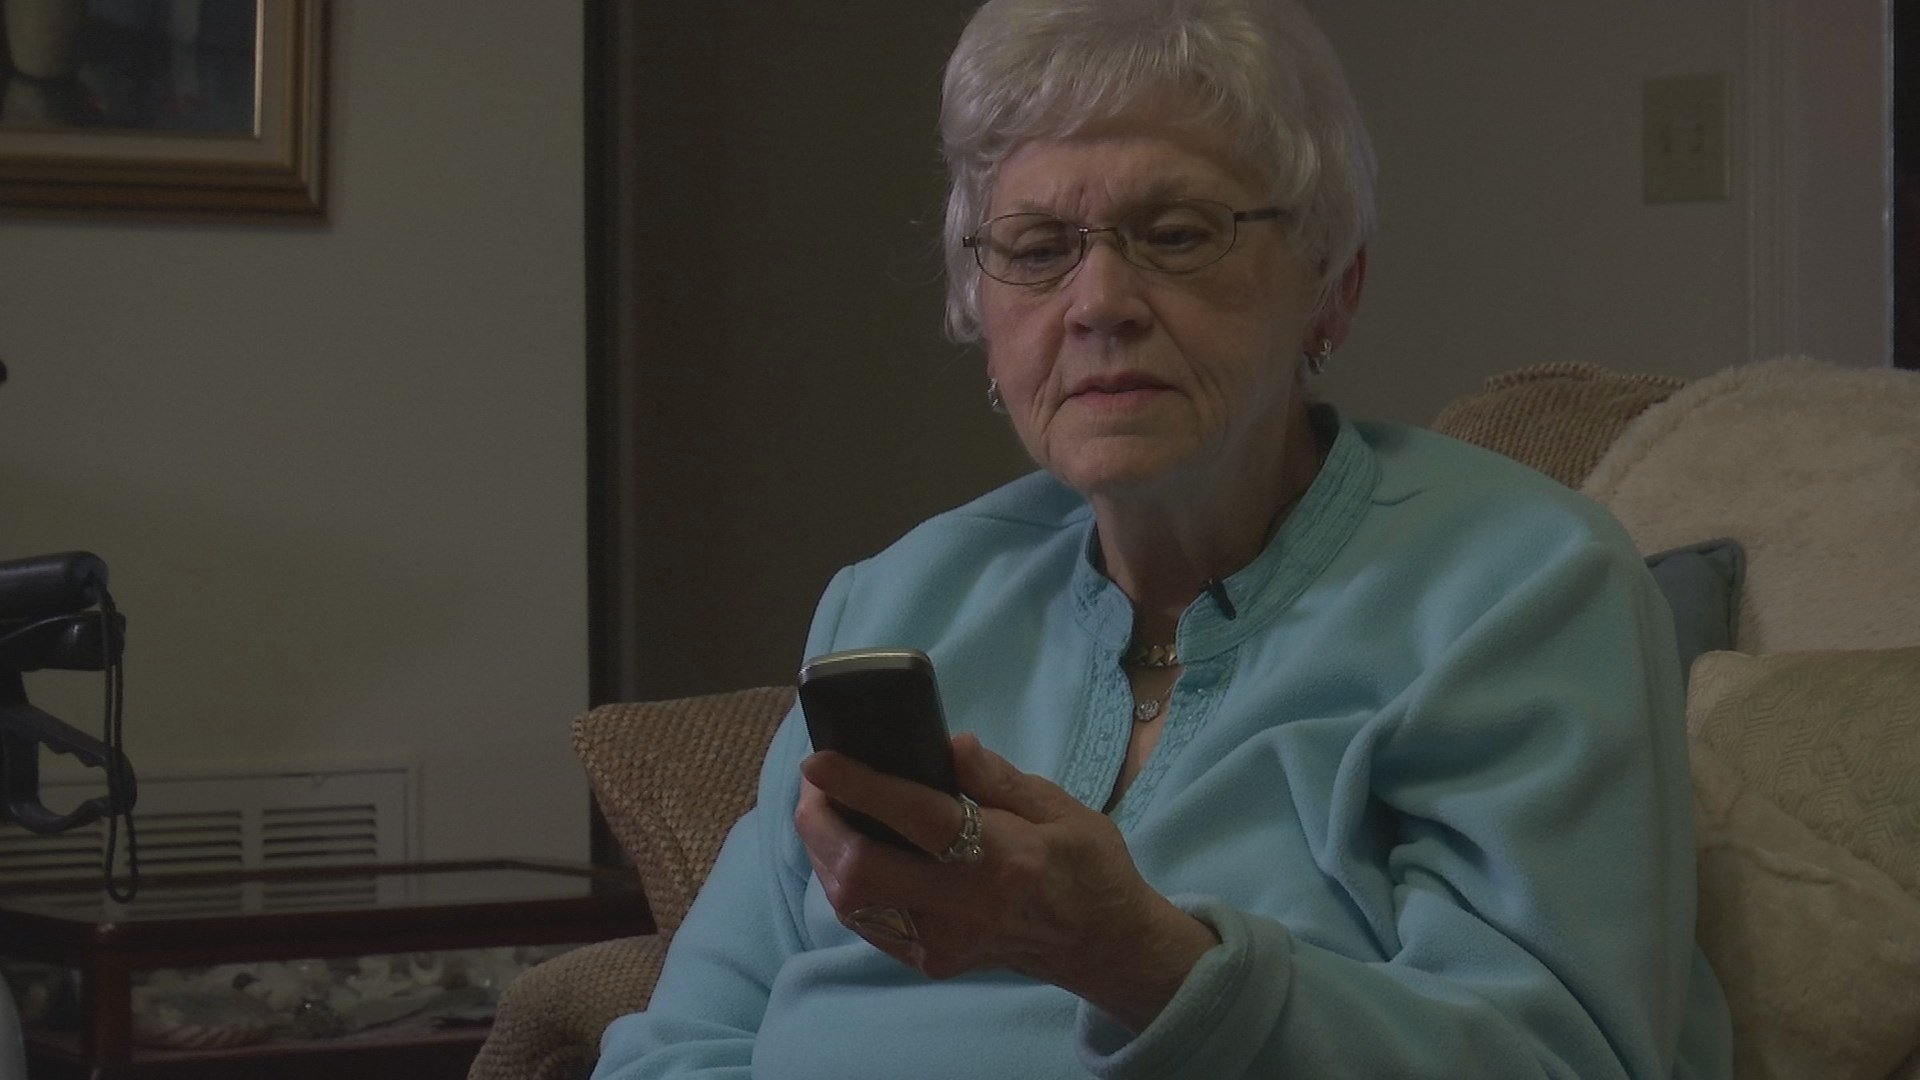 some seniors get cut off from society if anything happens to their landline phone (WGCL)